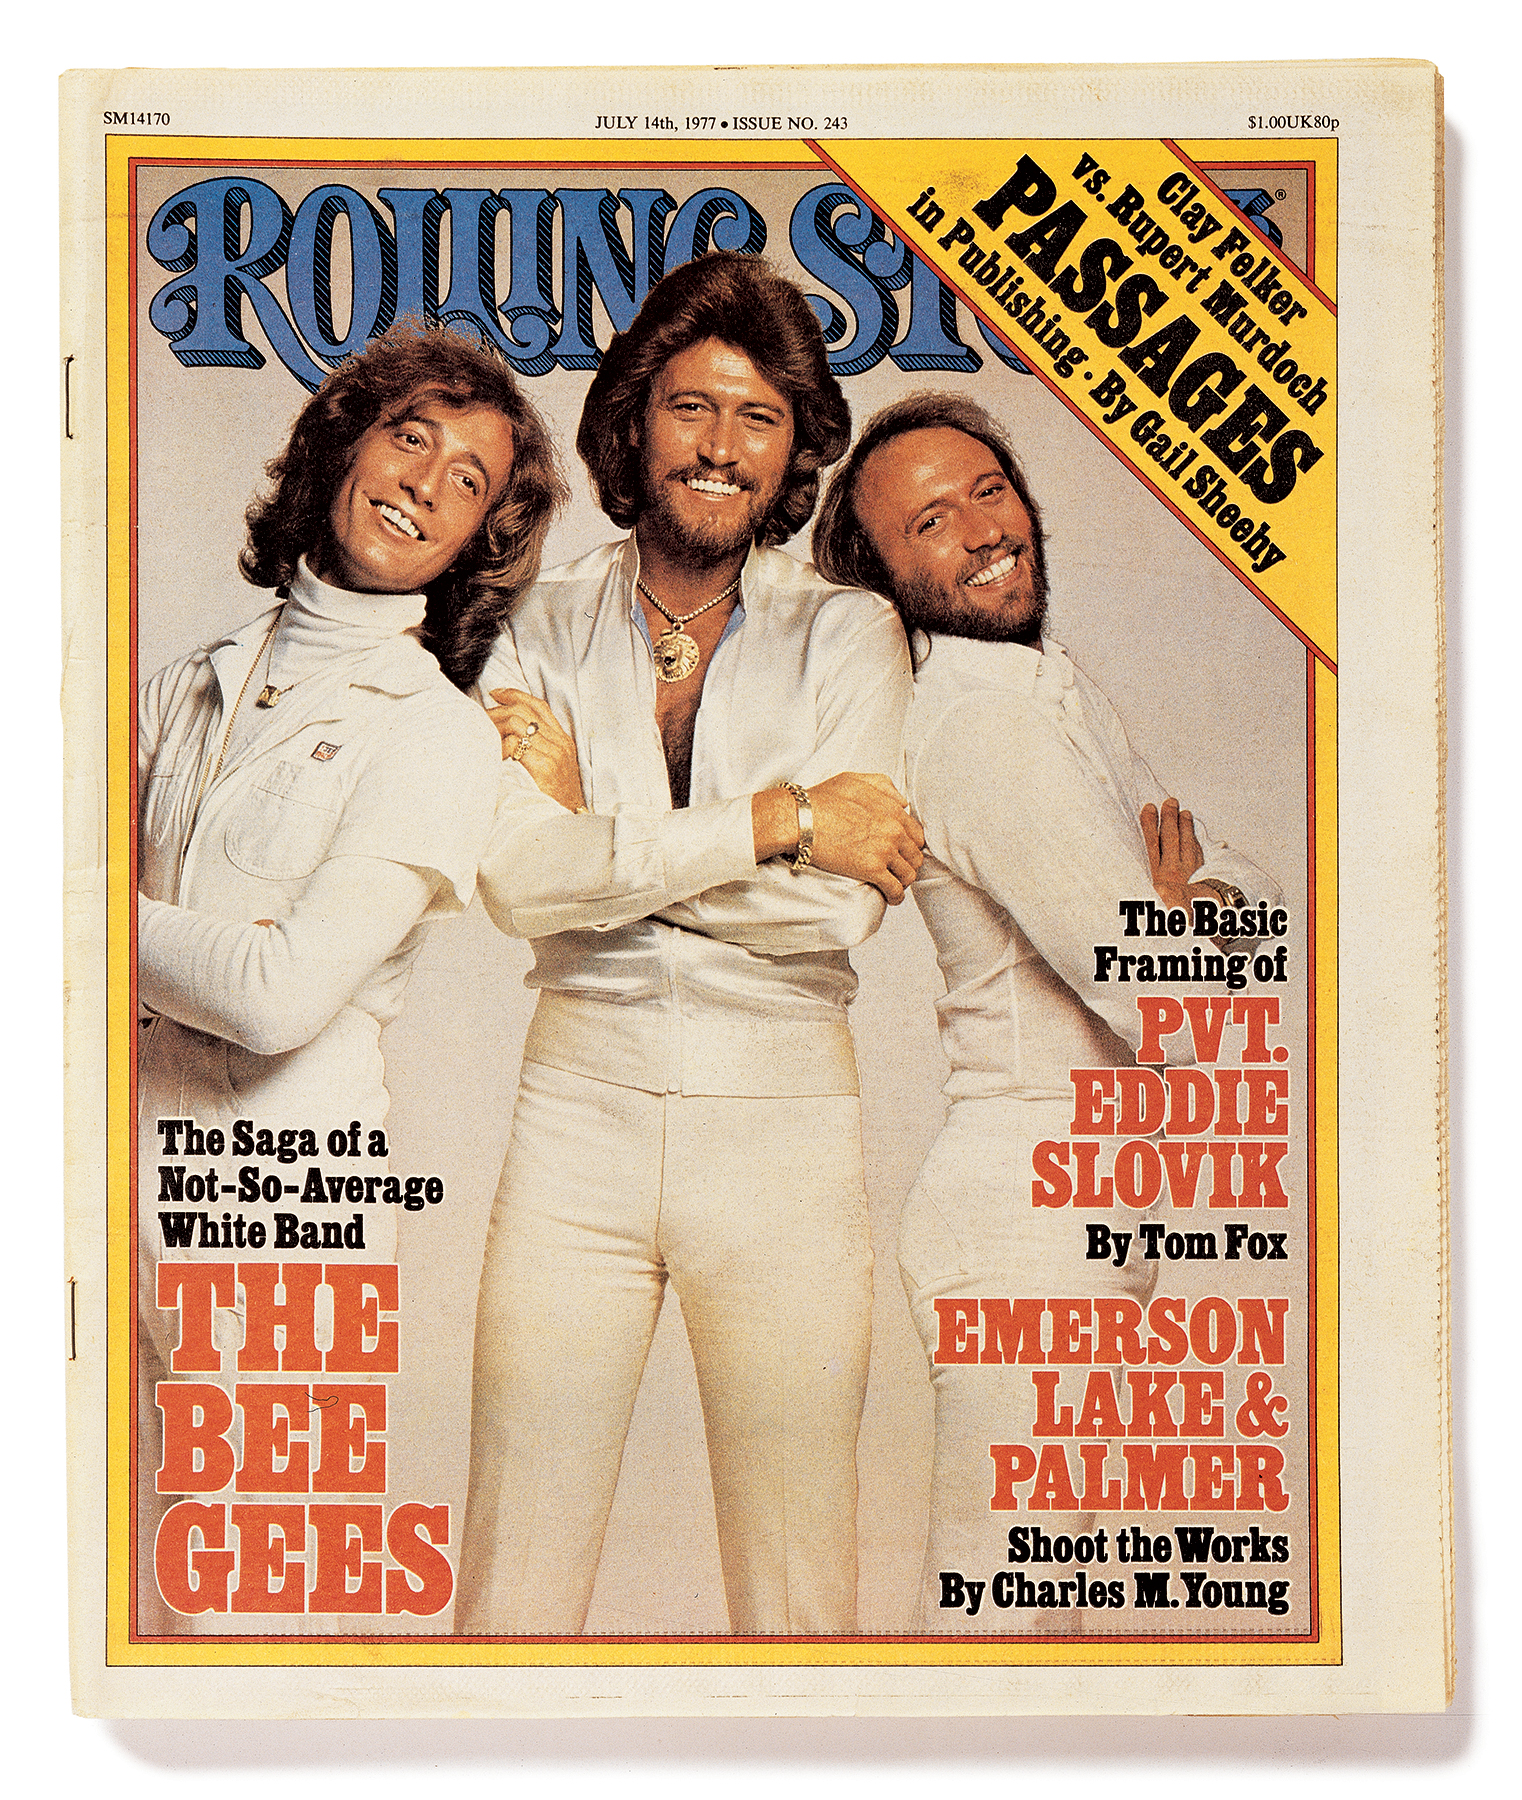 RS243 bee gees